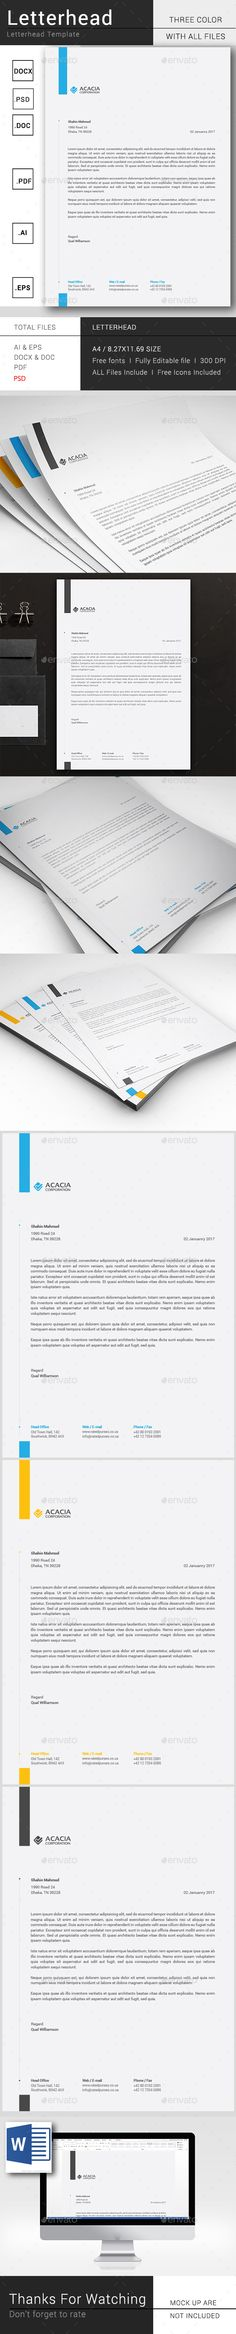 MS Word Letterhead Template Letterhead template, Stationery - free word letterhead template